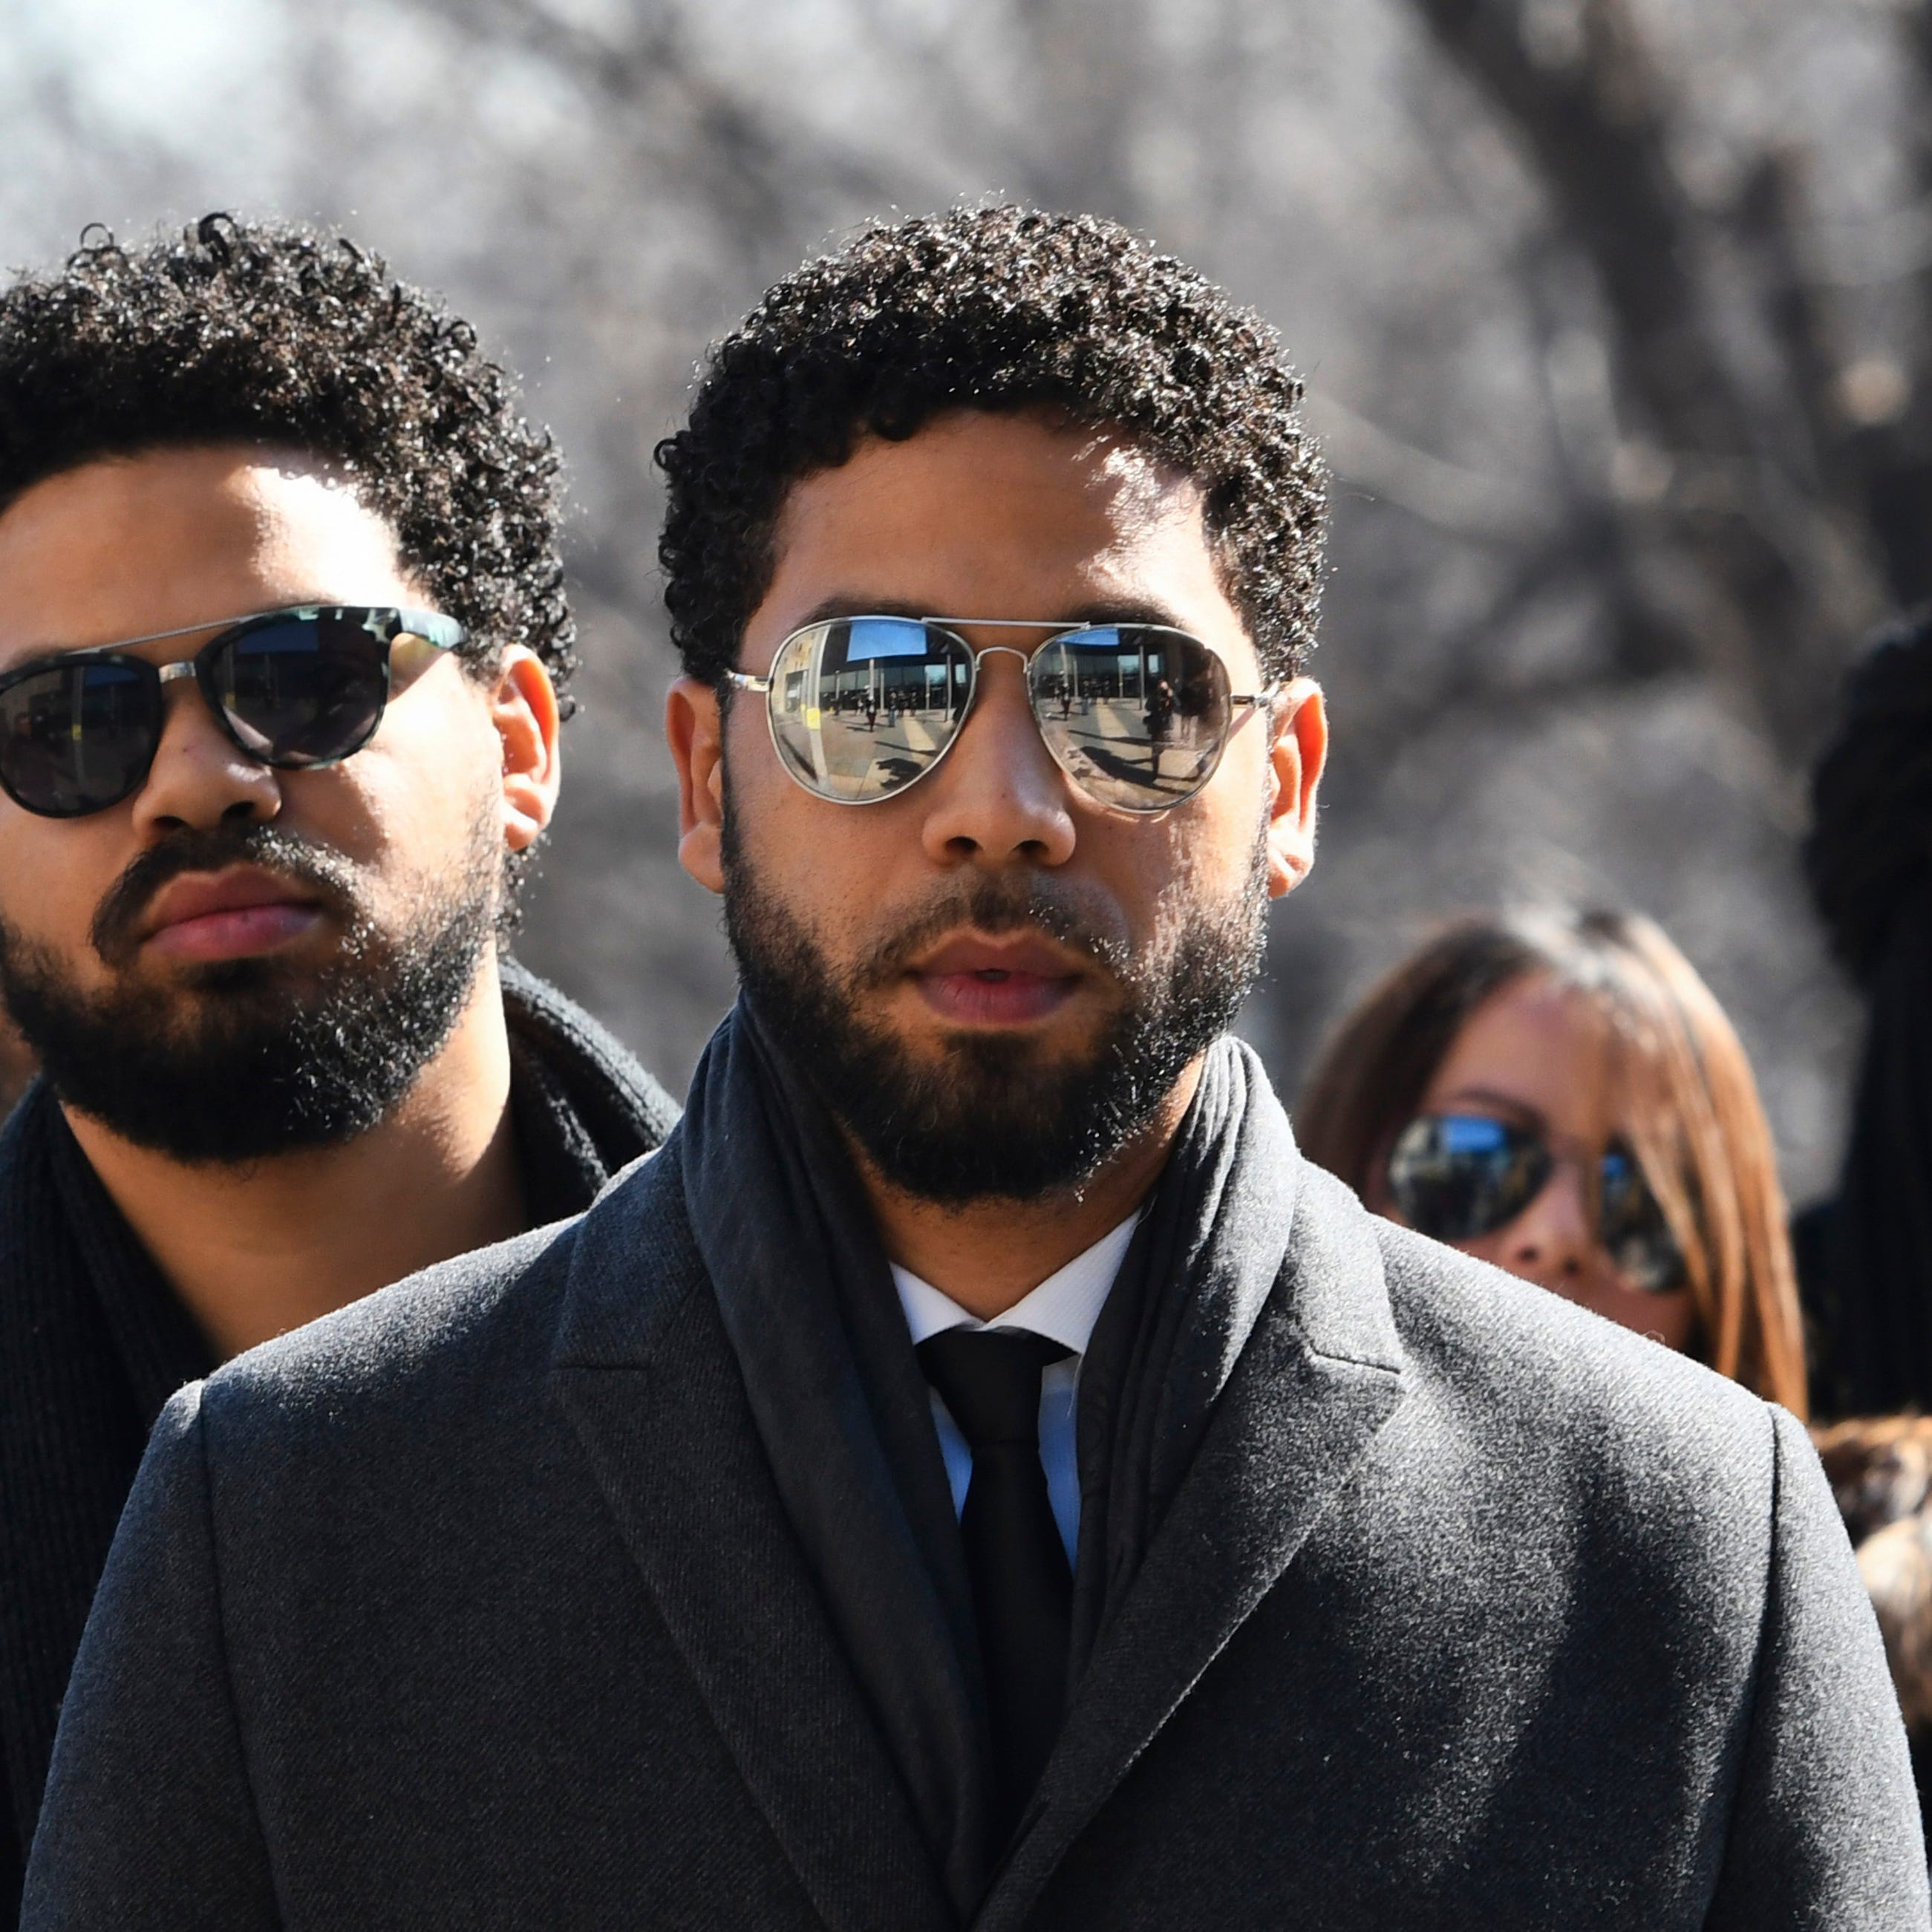 Charges dropped against 'Empire' actor Jussie Smollett